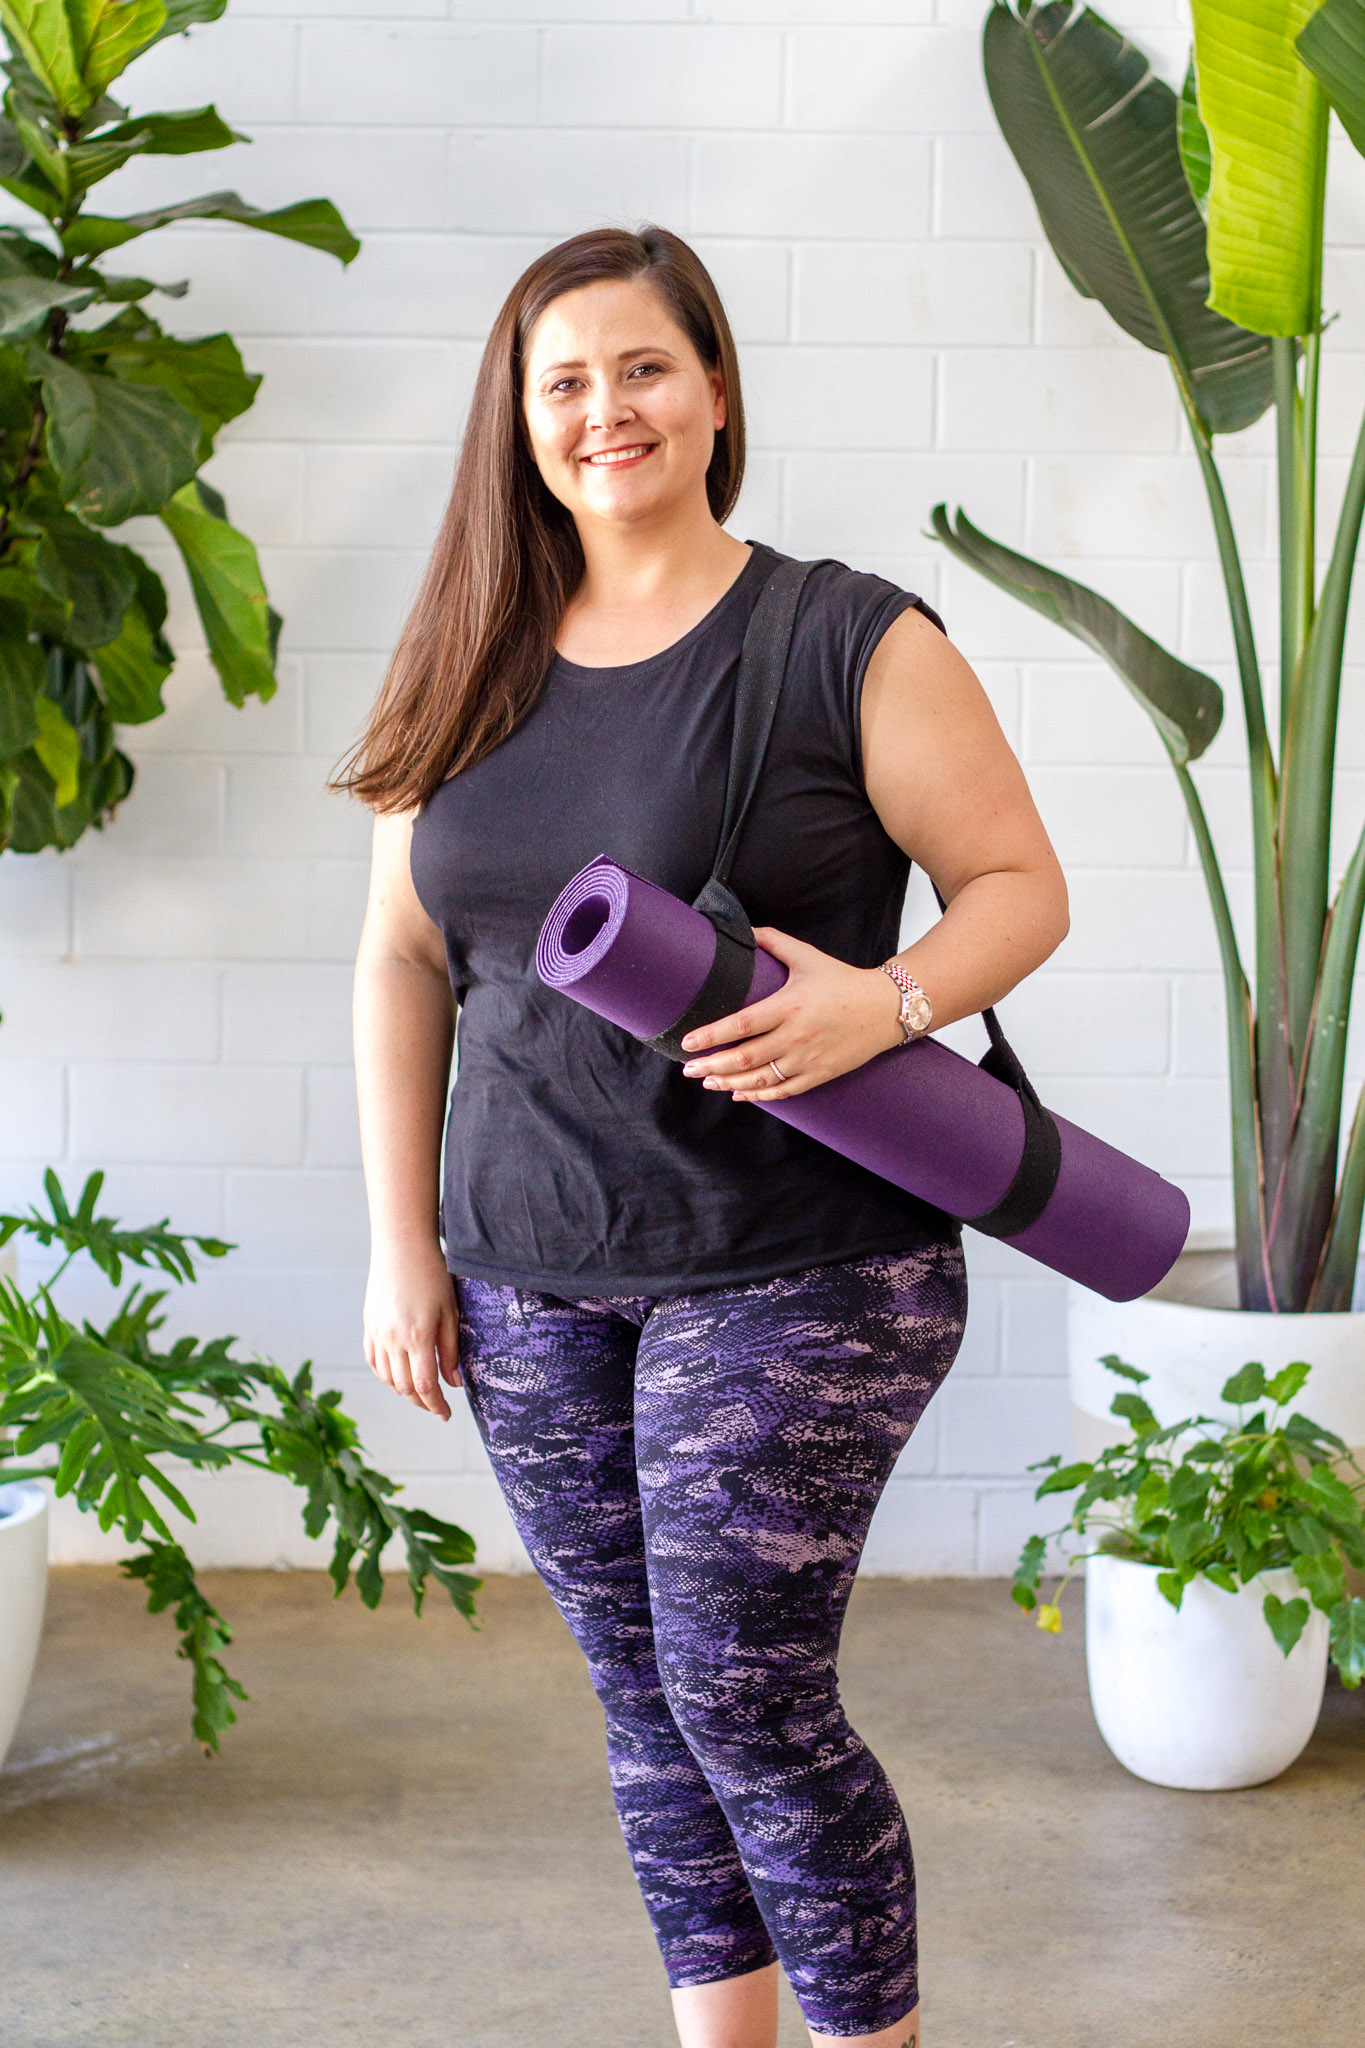 personal brand photo of girl and yoga mat surrounded by plants